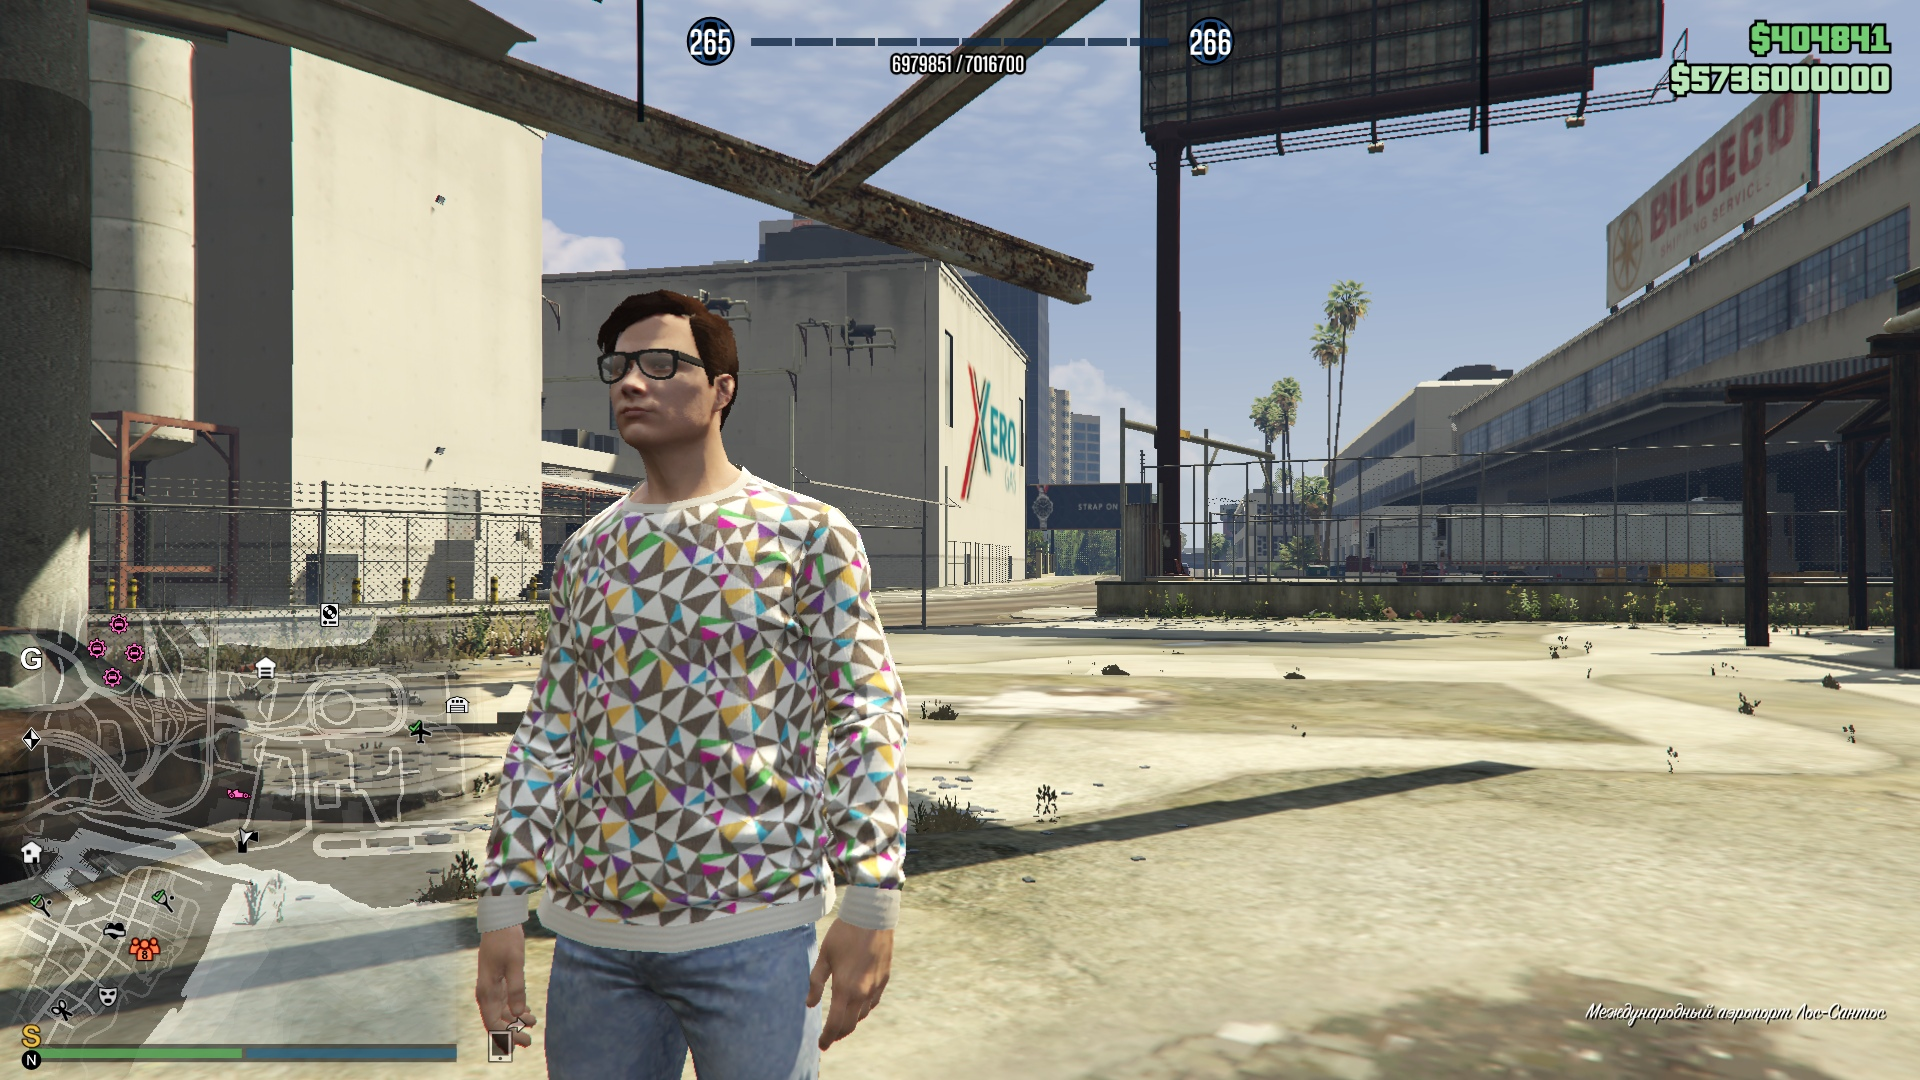 💰 Money GTA V Online » from 100.000.000 💲 BONUSES